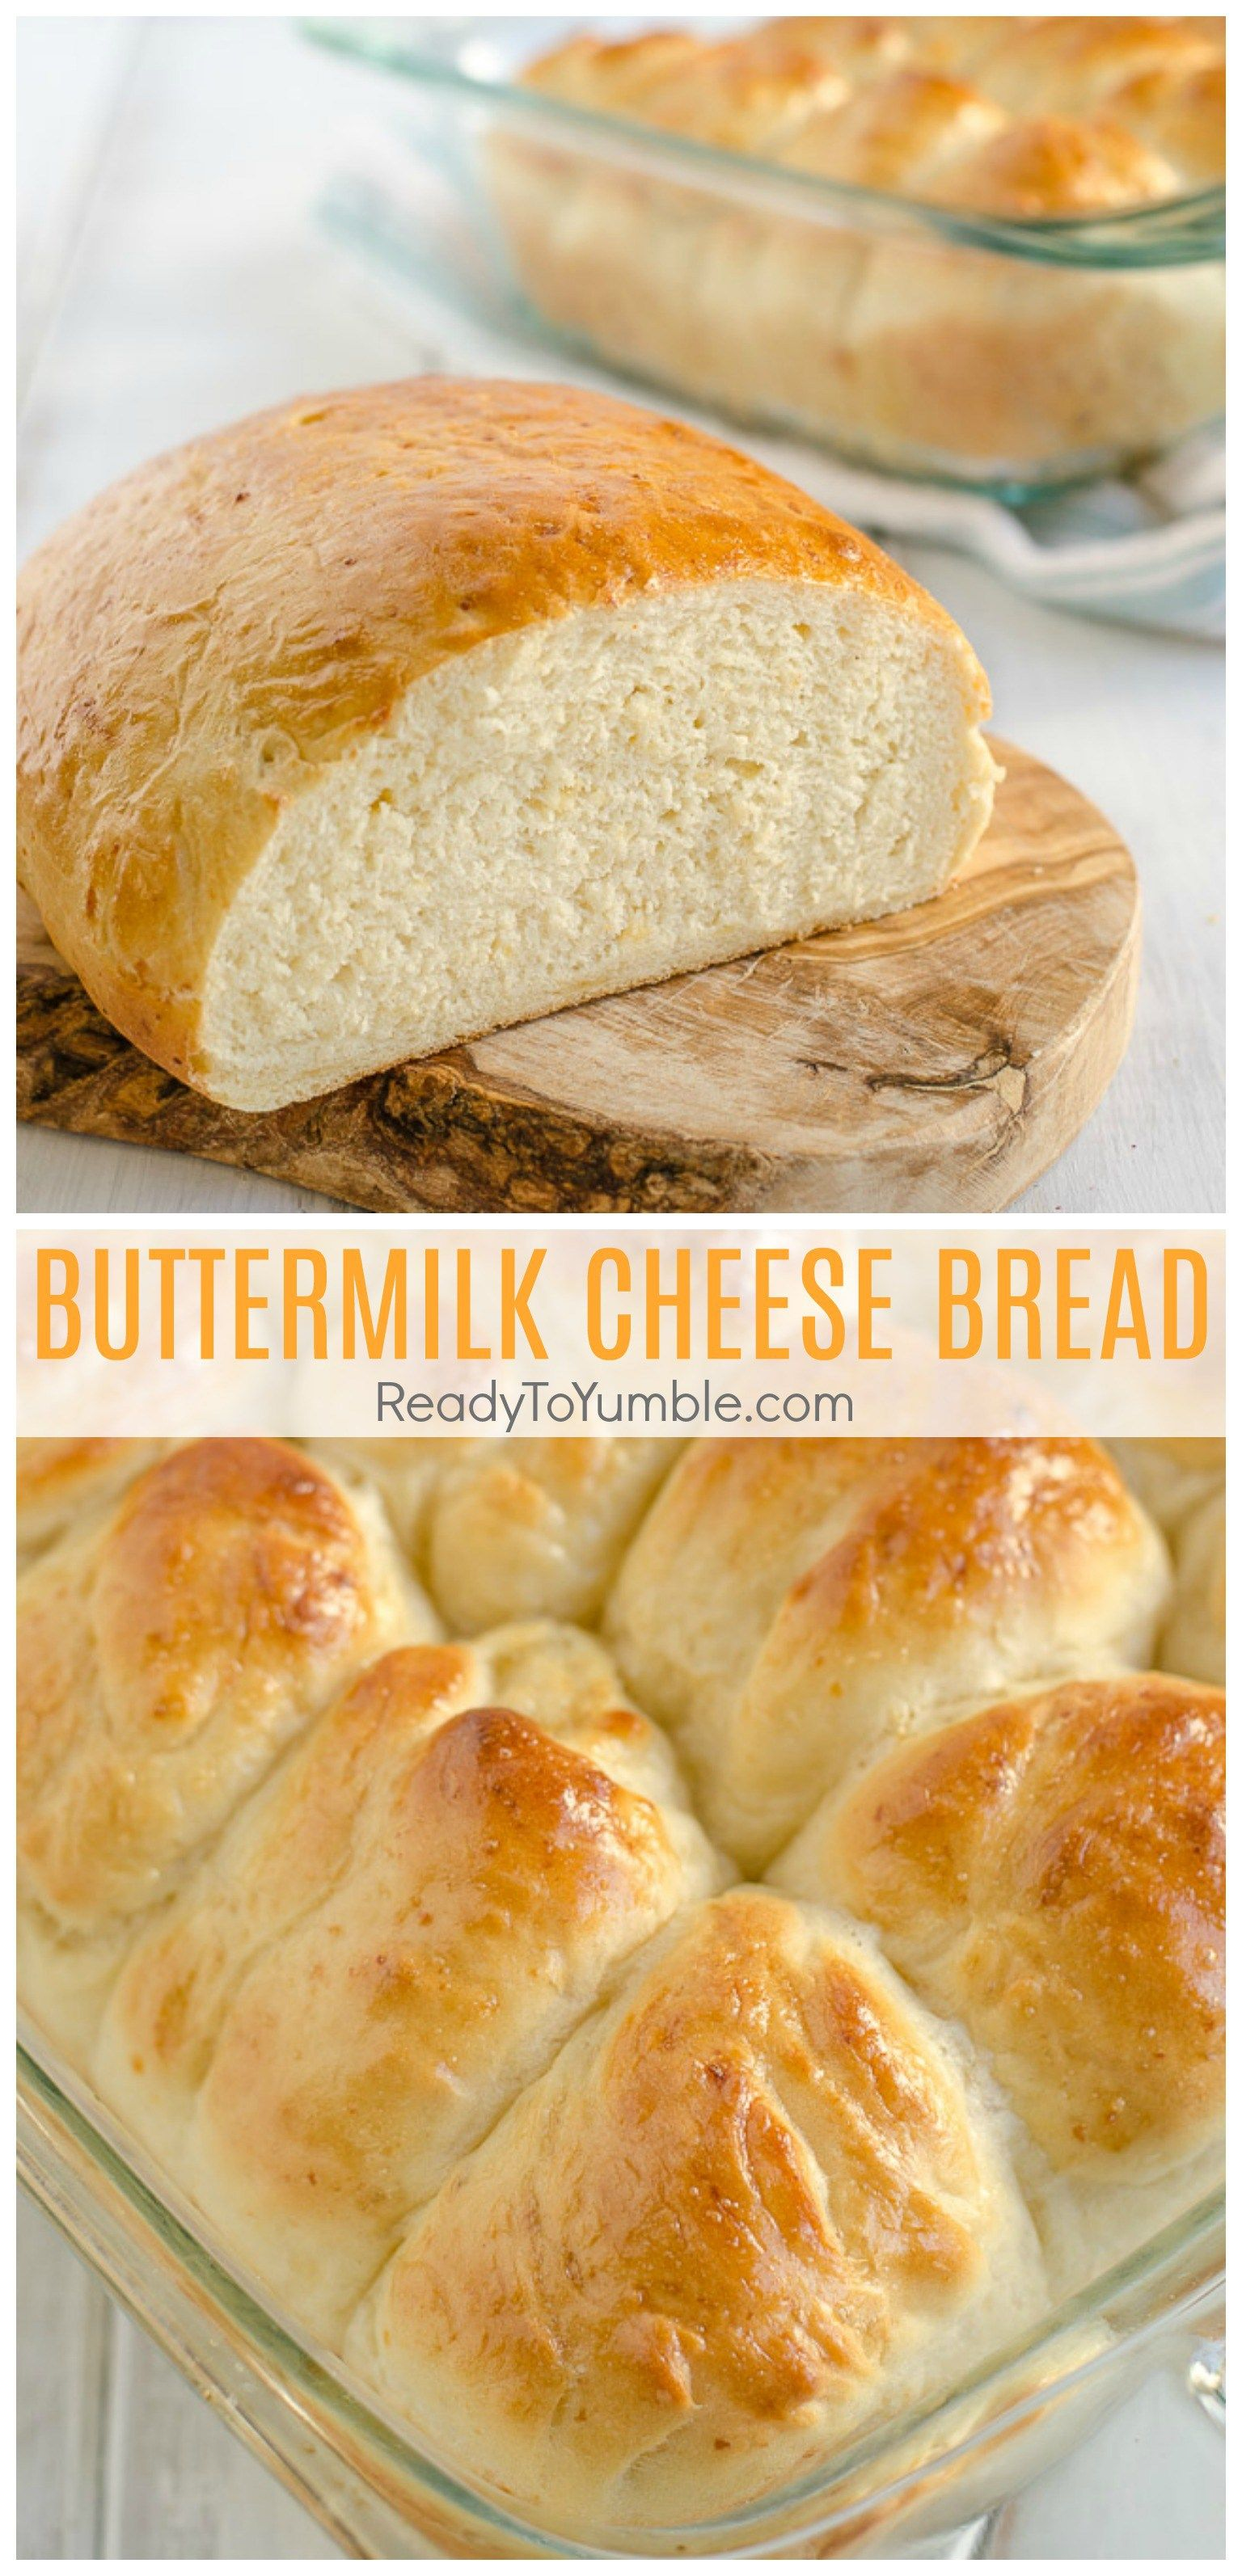 Buttermilk Cheese Bread Ready To Yumble Recipe Cheese Bread Side Dish Recipes Easy Bread